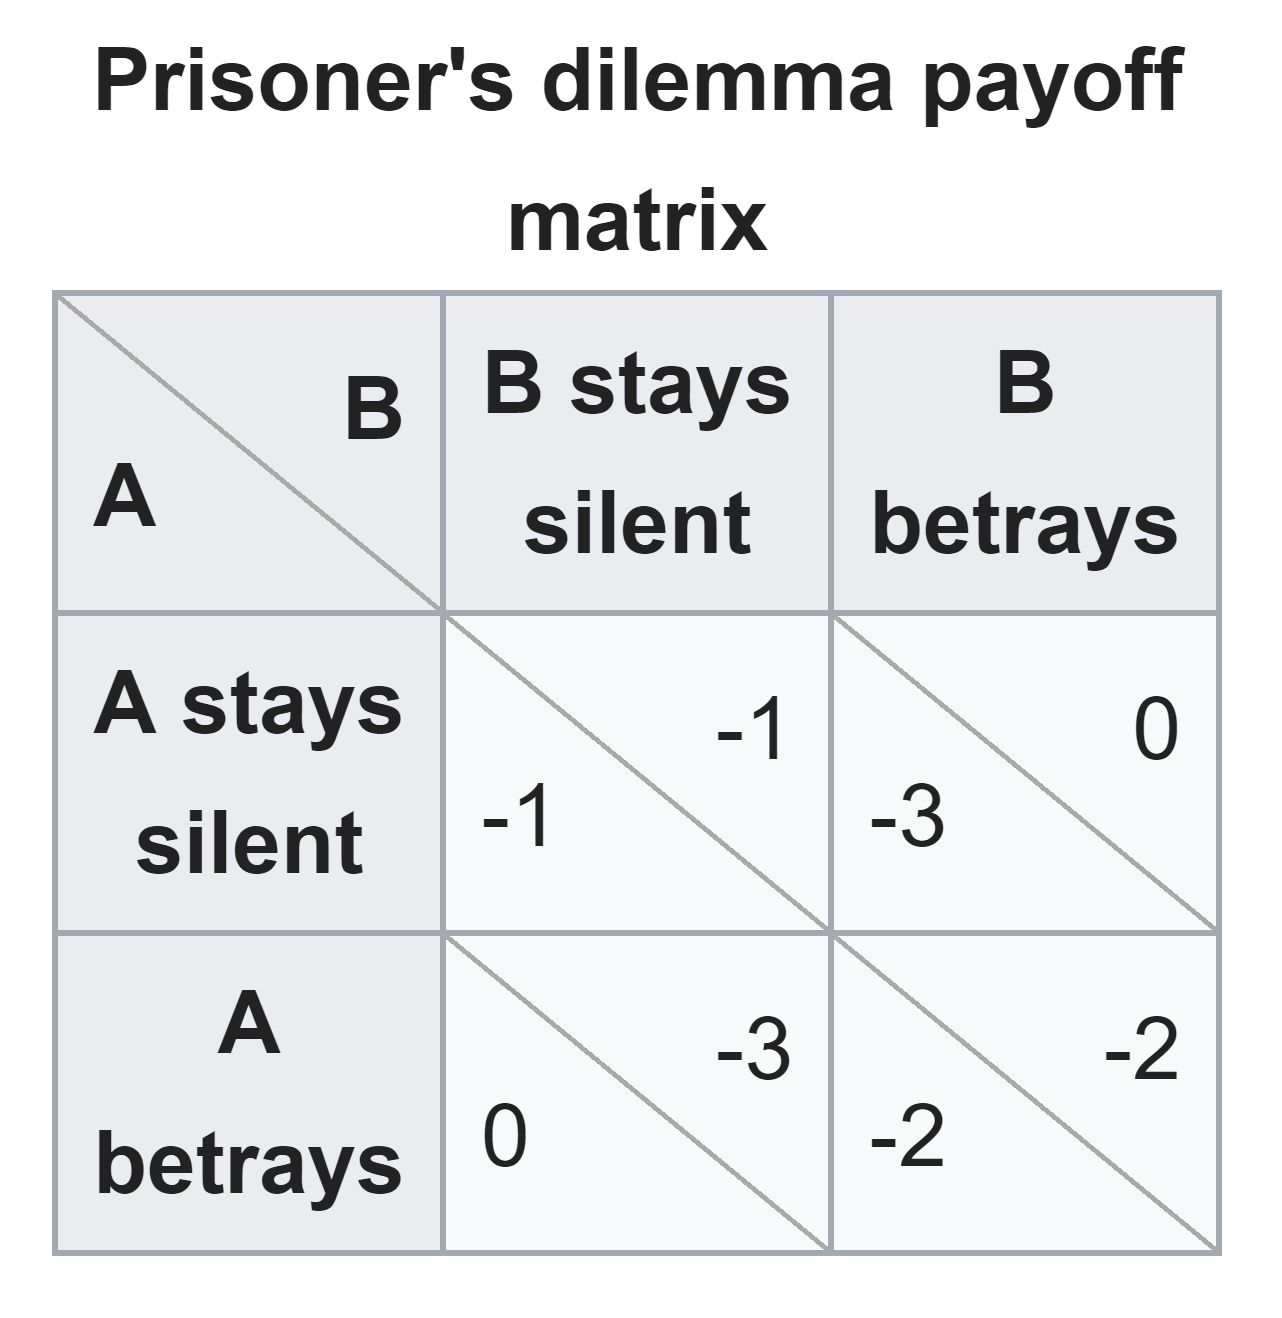 [The prisoner's payoff matrix](https://en.wikipedia.org/wiki/Prisoner%27s_dilemma)